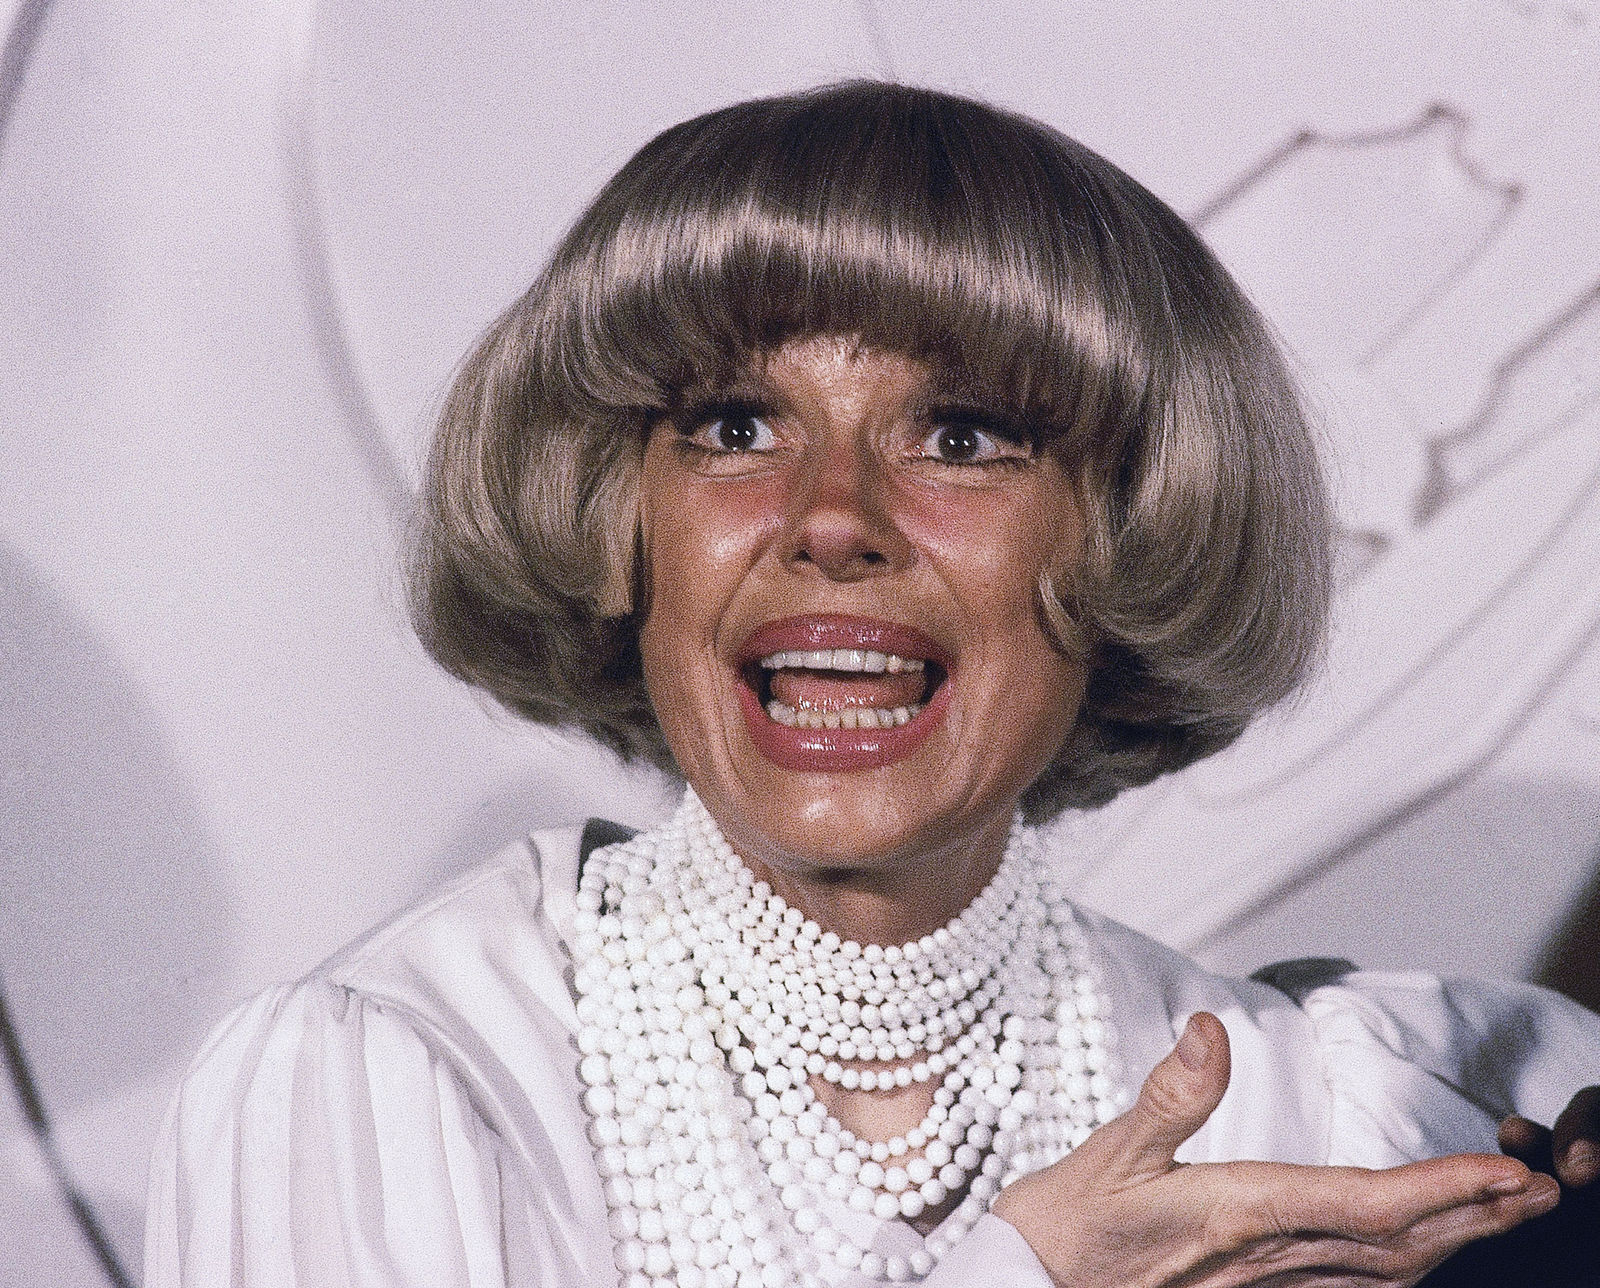 FILE - This Feb. 24, 1982 file photo shows actress Carol Channing at the Grammy Awards  in Los Angeles. (AP Photo/Doug Pizac, File)